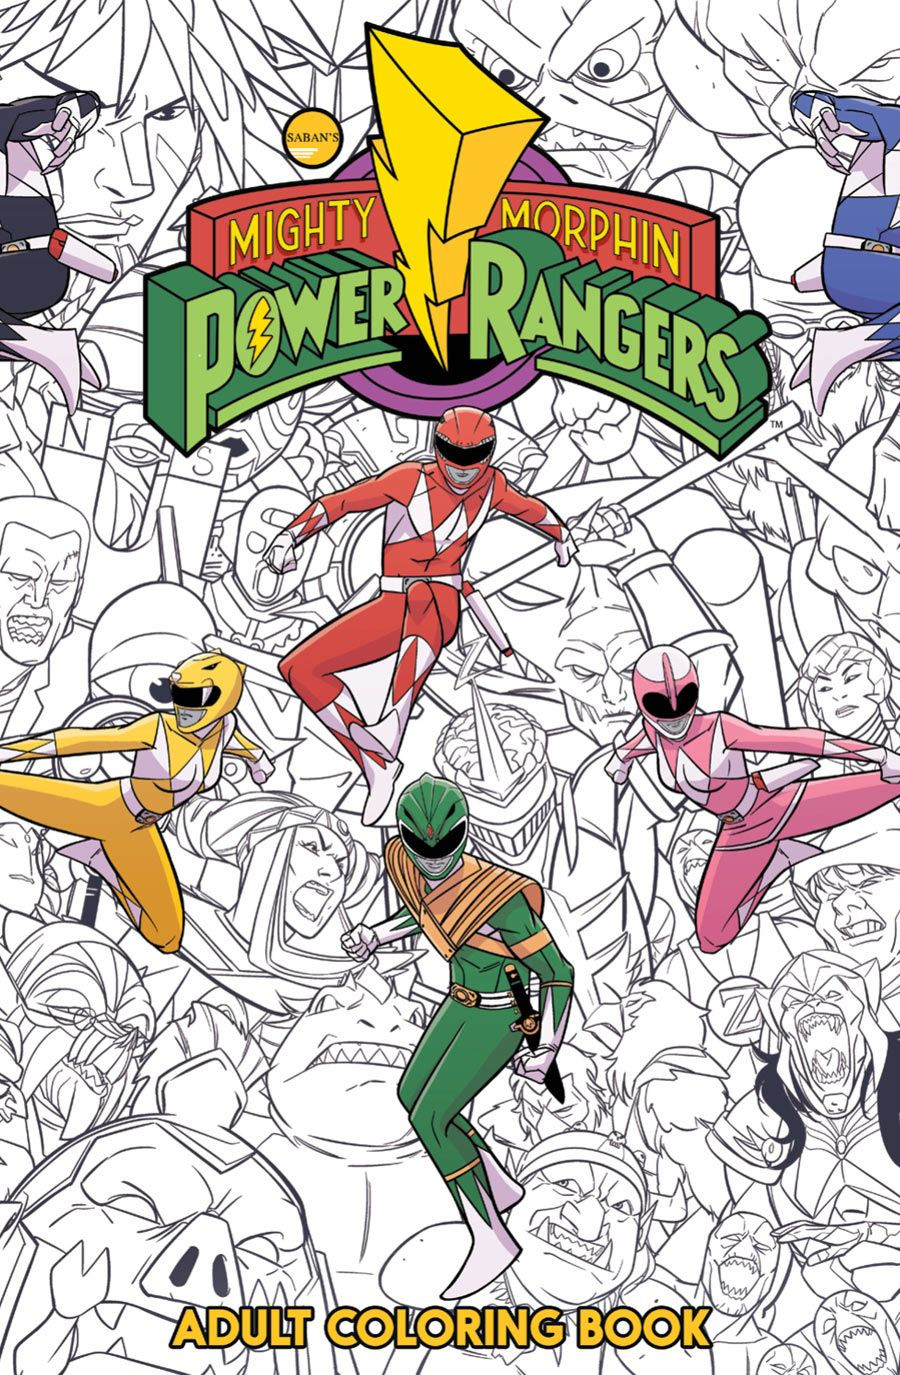 PREVIEW Mighty Morphin Power Rangers Adult Coloring Book   CBR